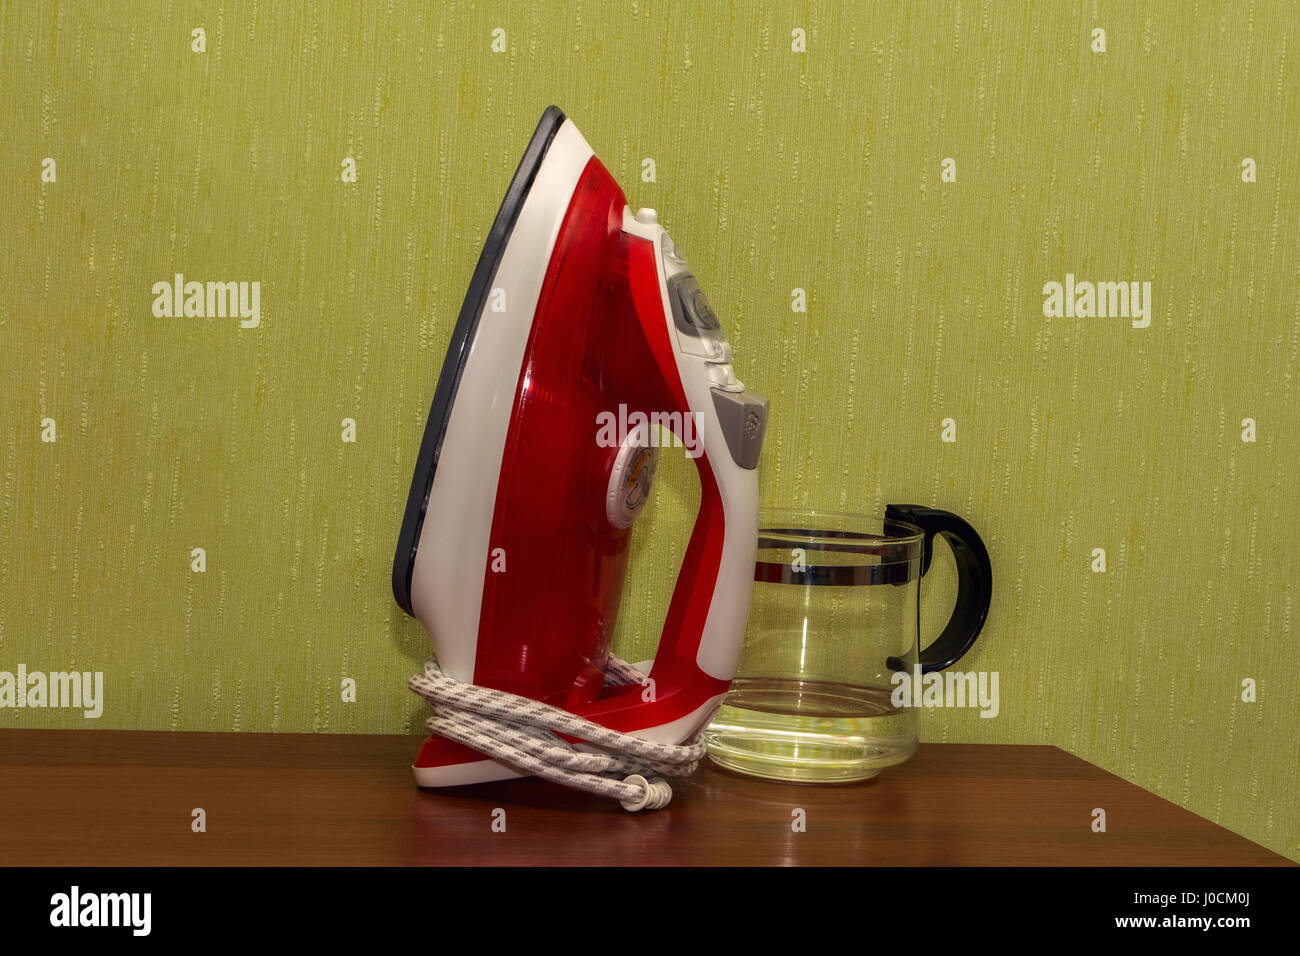 Iron red for ironing clothes on a brown table against a green wall. - Stock Image